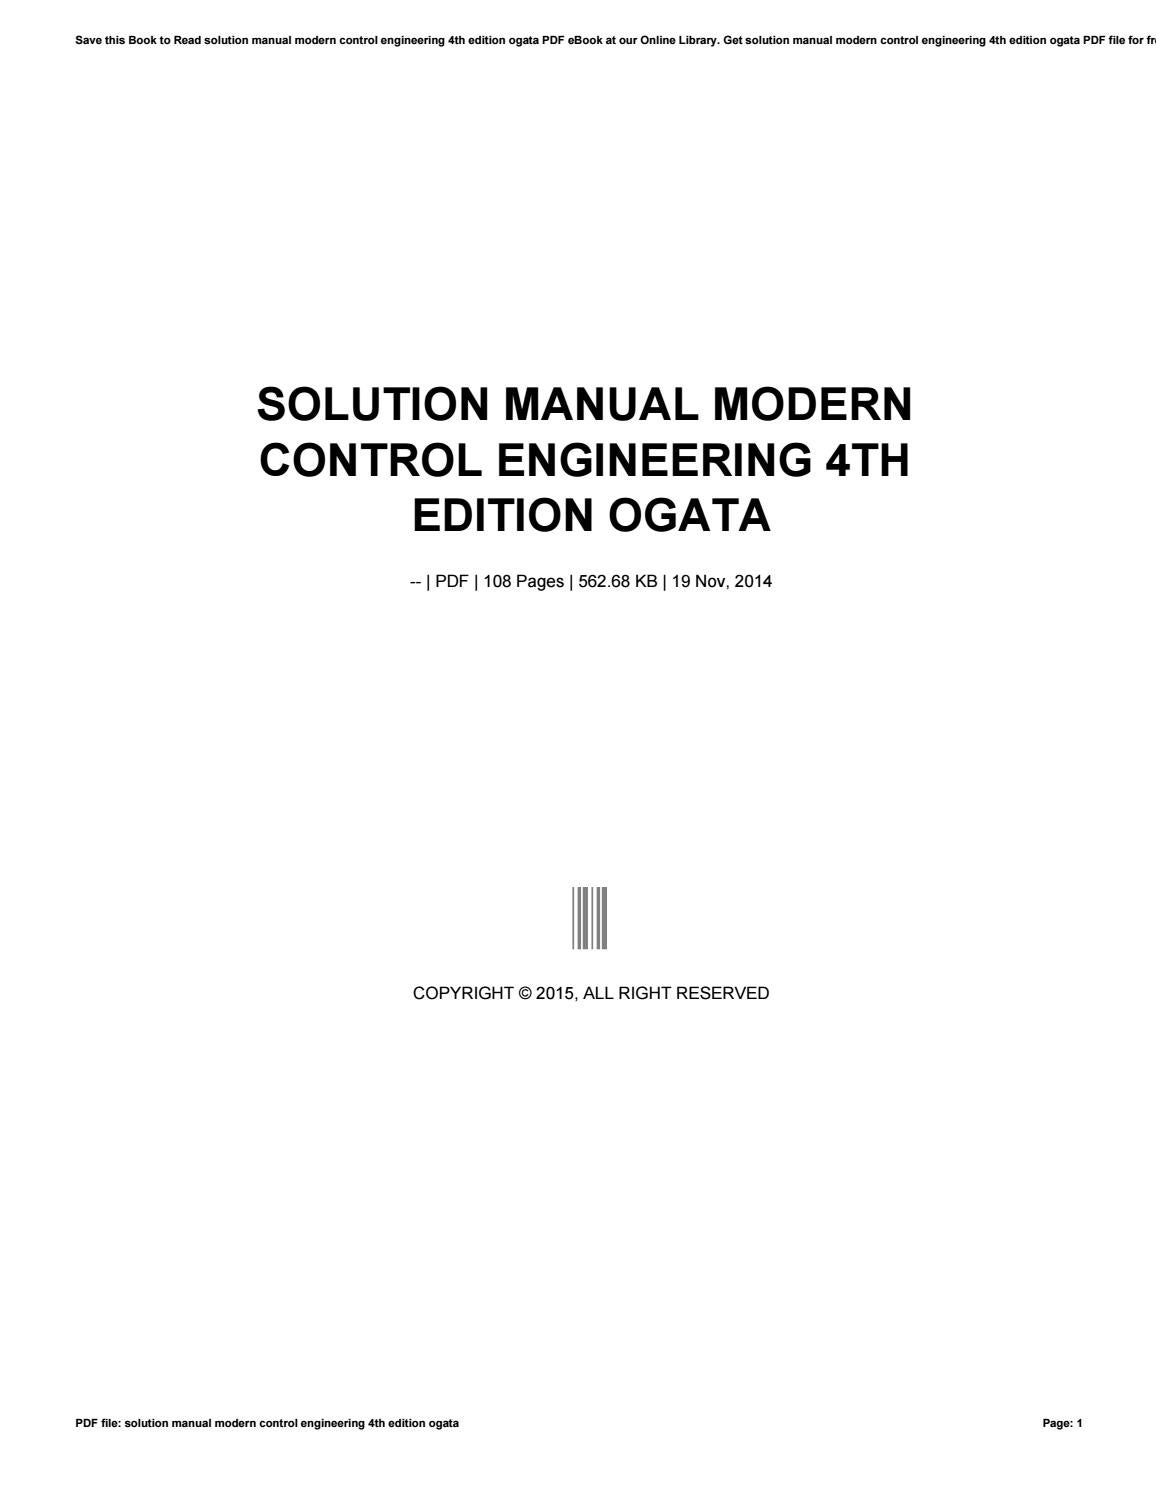 Solution manual modern control engineering 4th edition ogata by preseven3 -  issuu